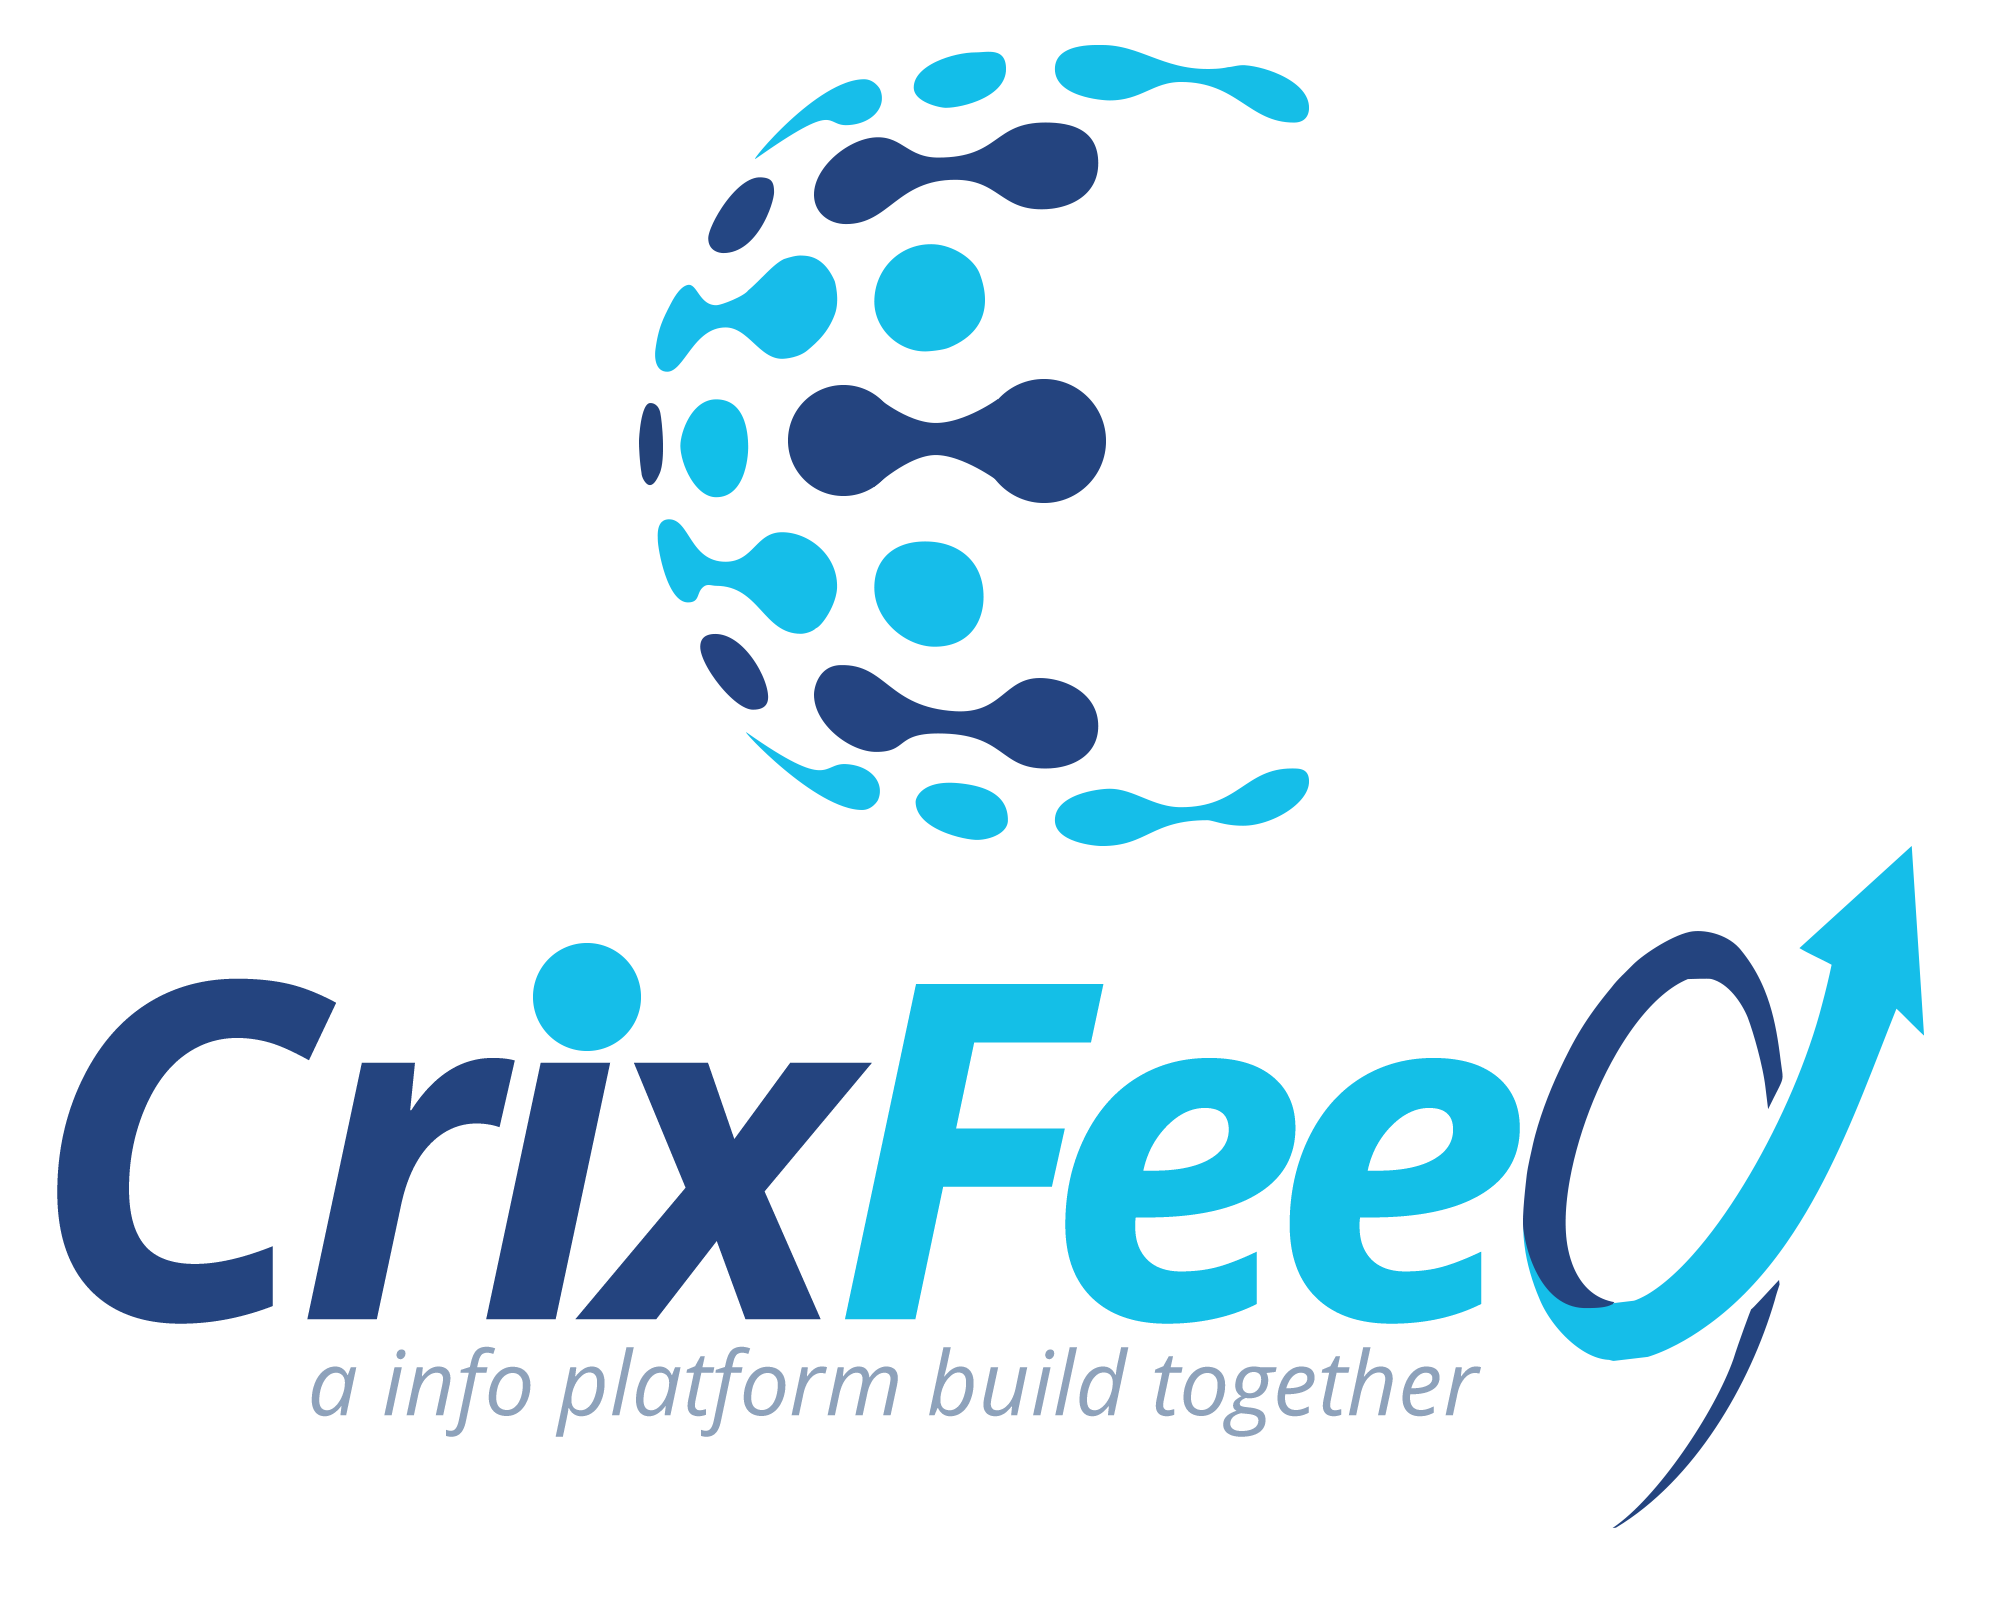 crixfeed-big1-transparent-background